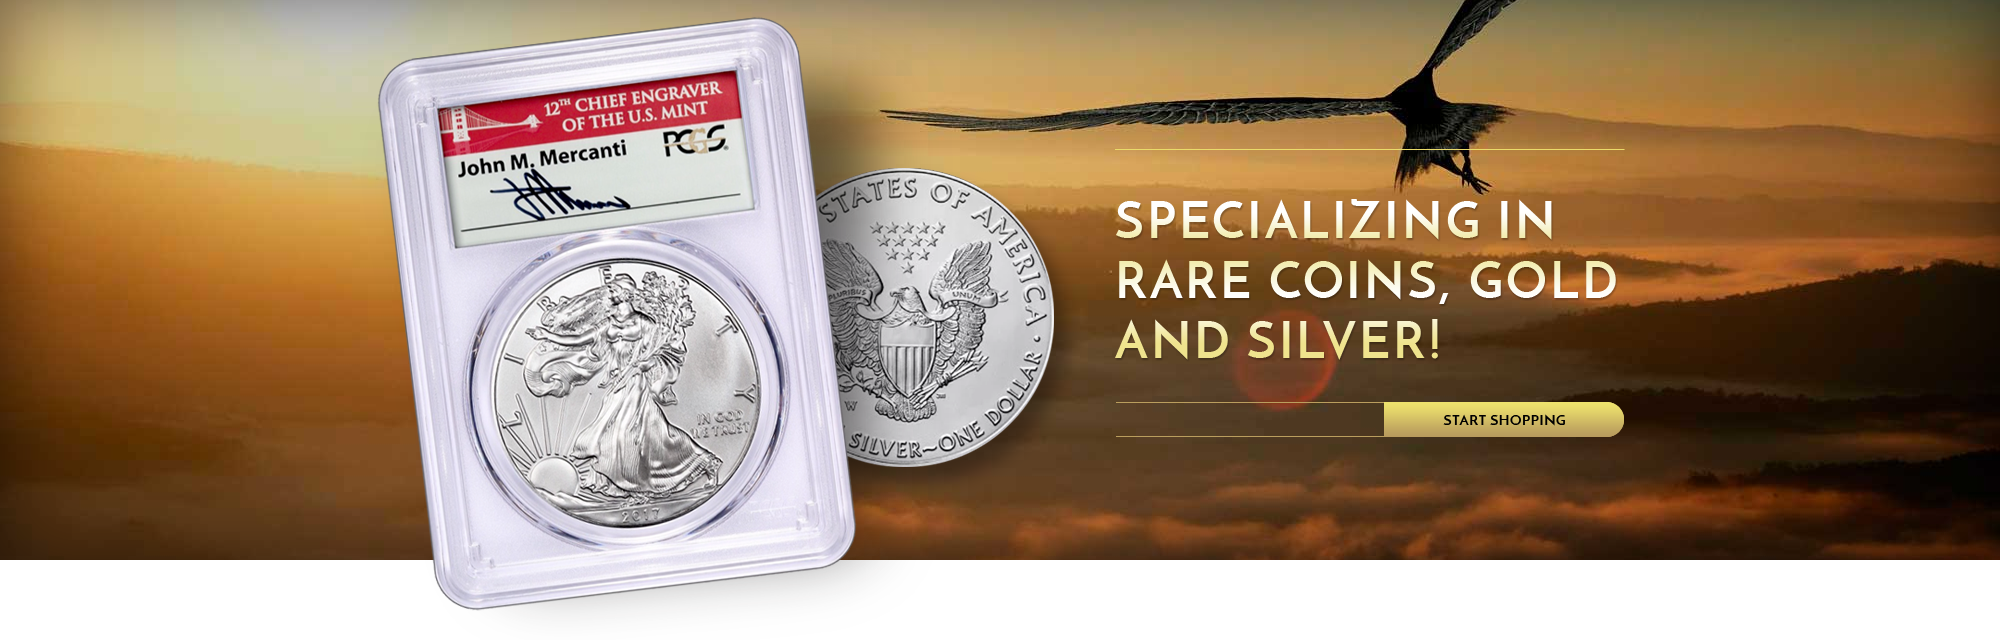 Specializing in rare coins, gold and silver! - start shopping